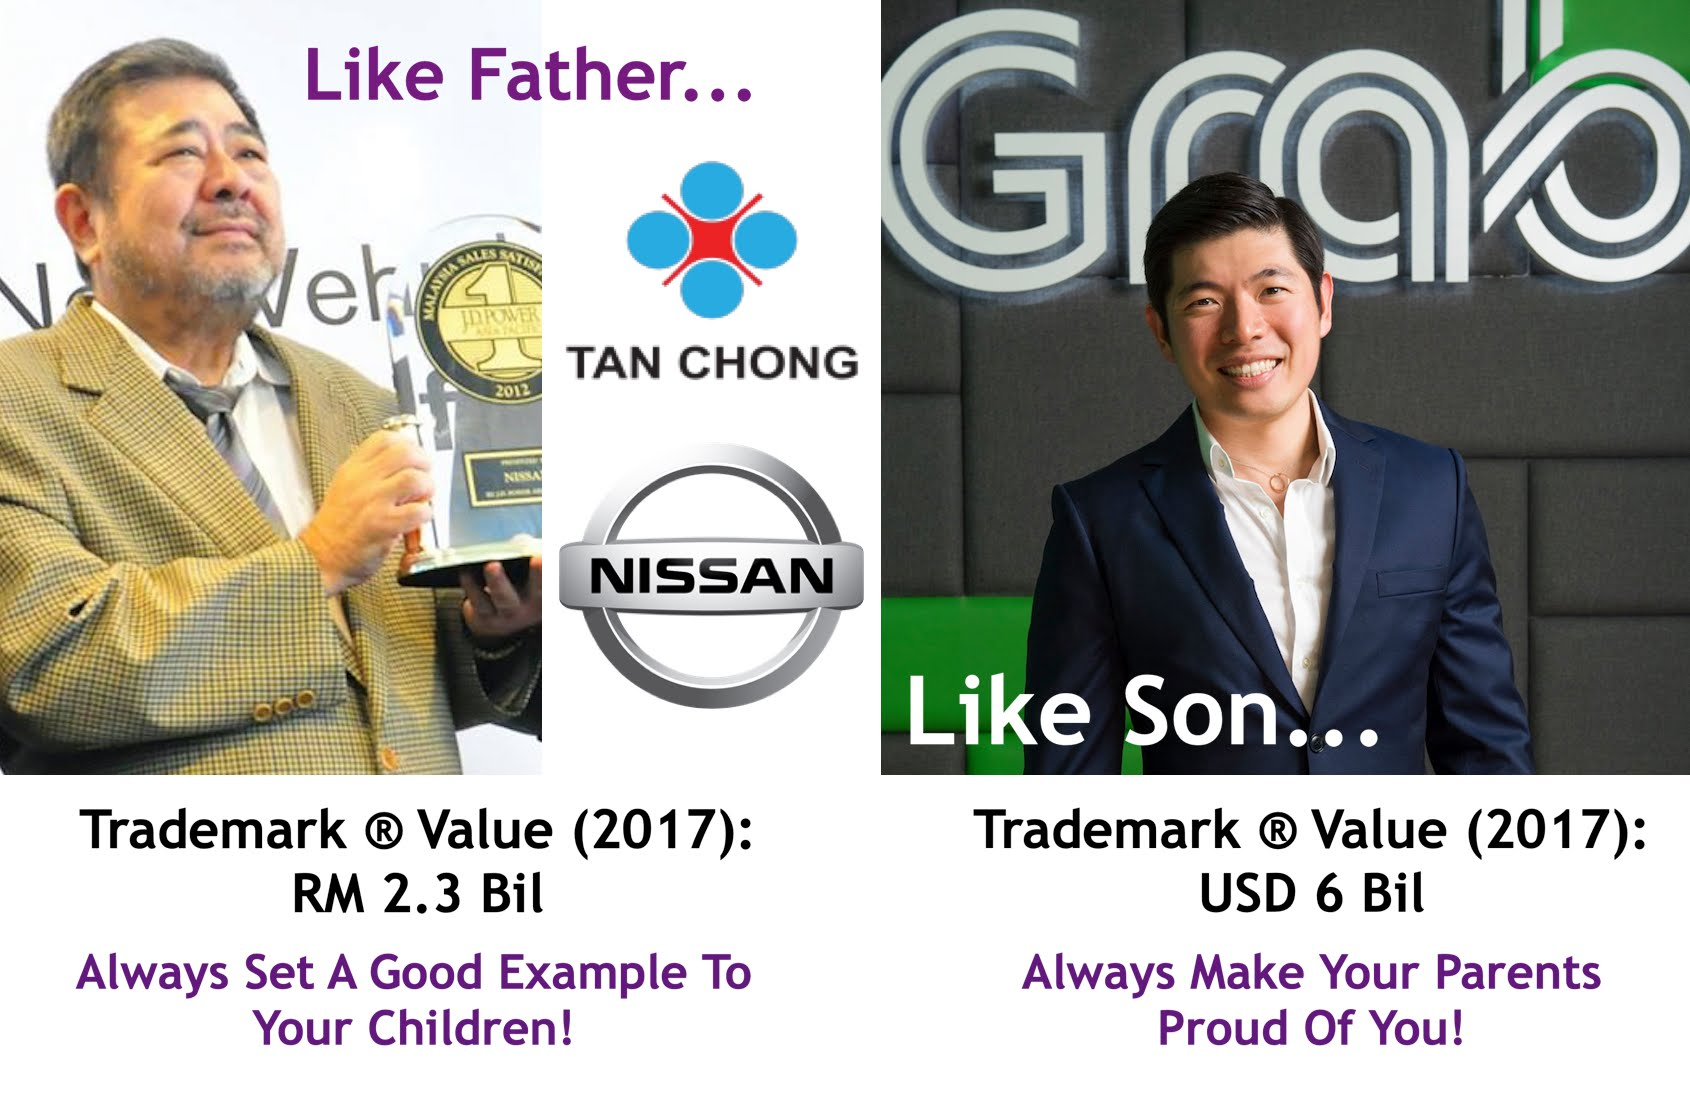 Trademark Makes Your Parents Proud Of You